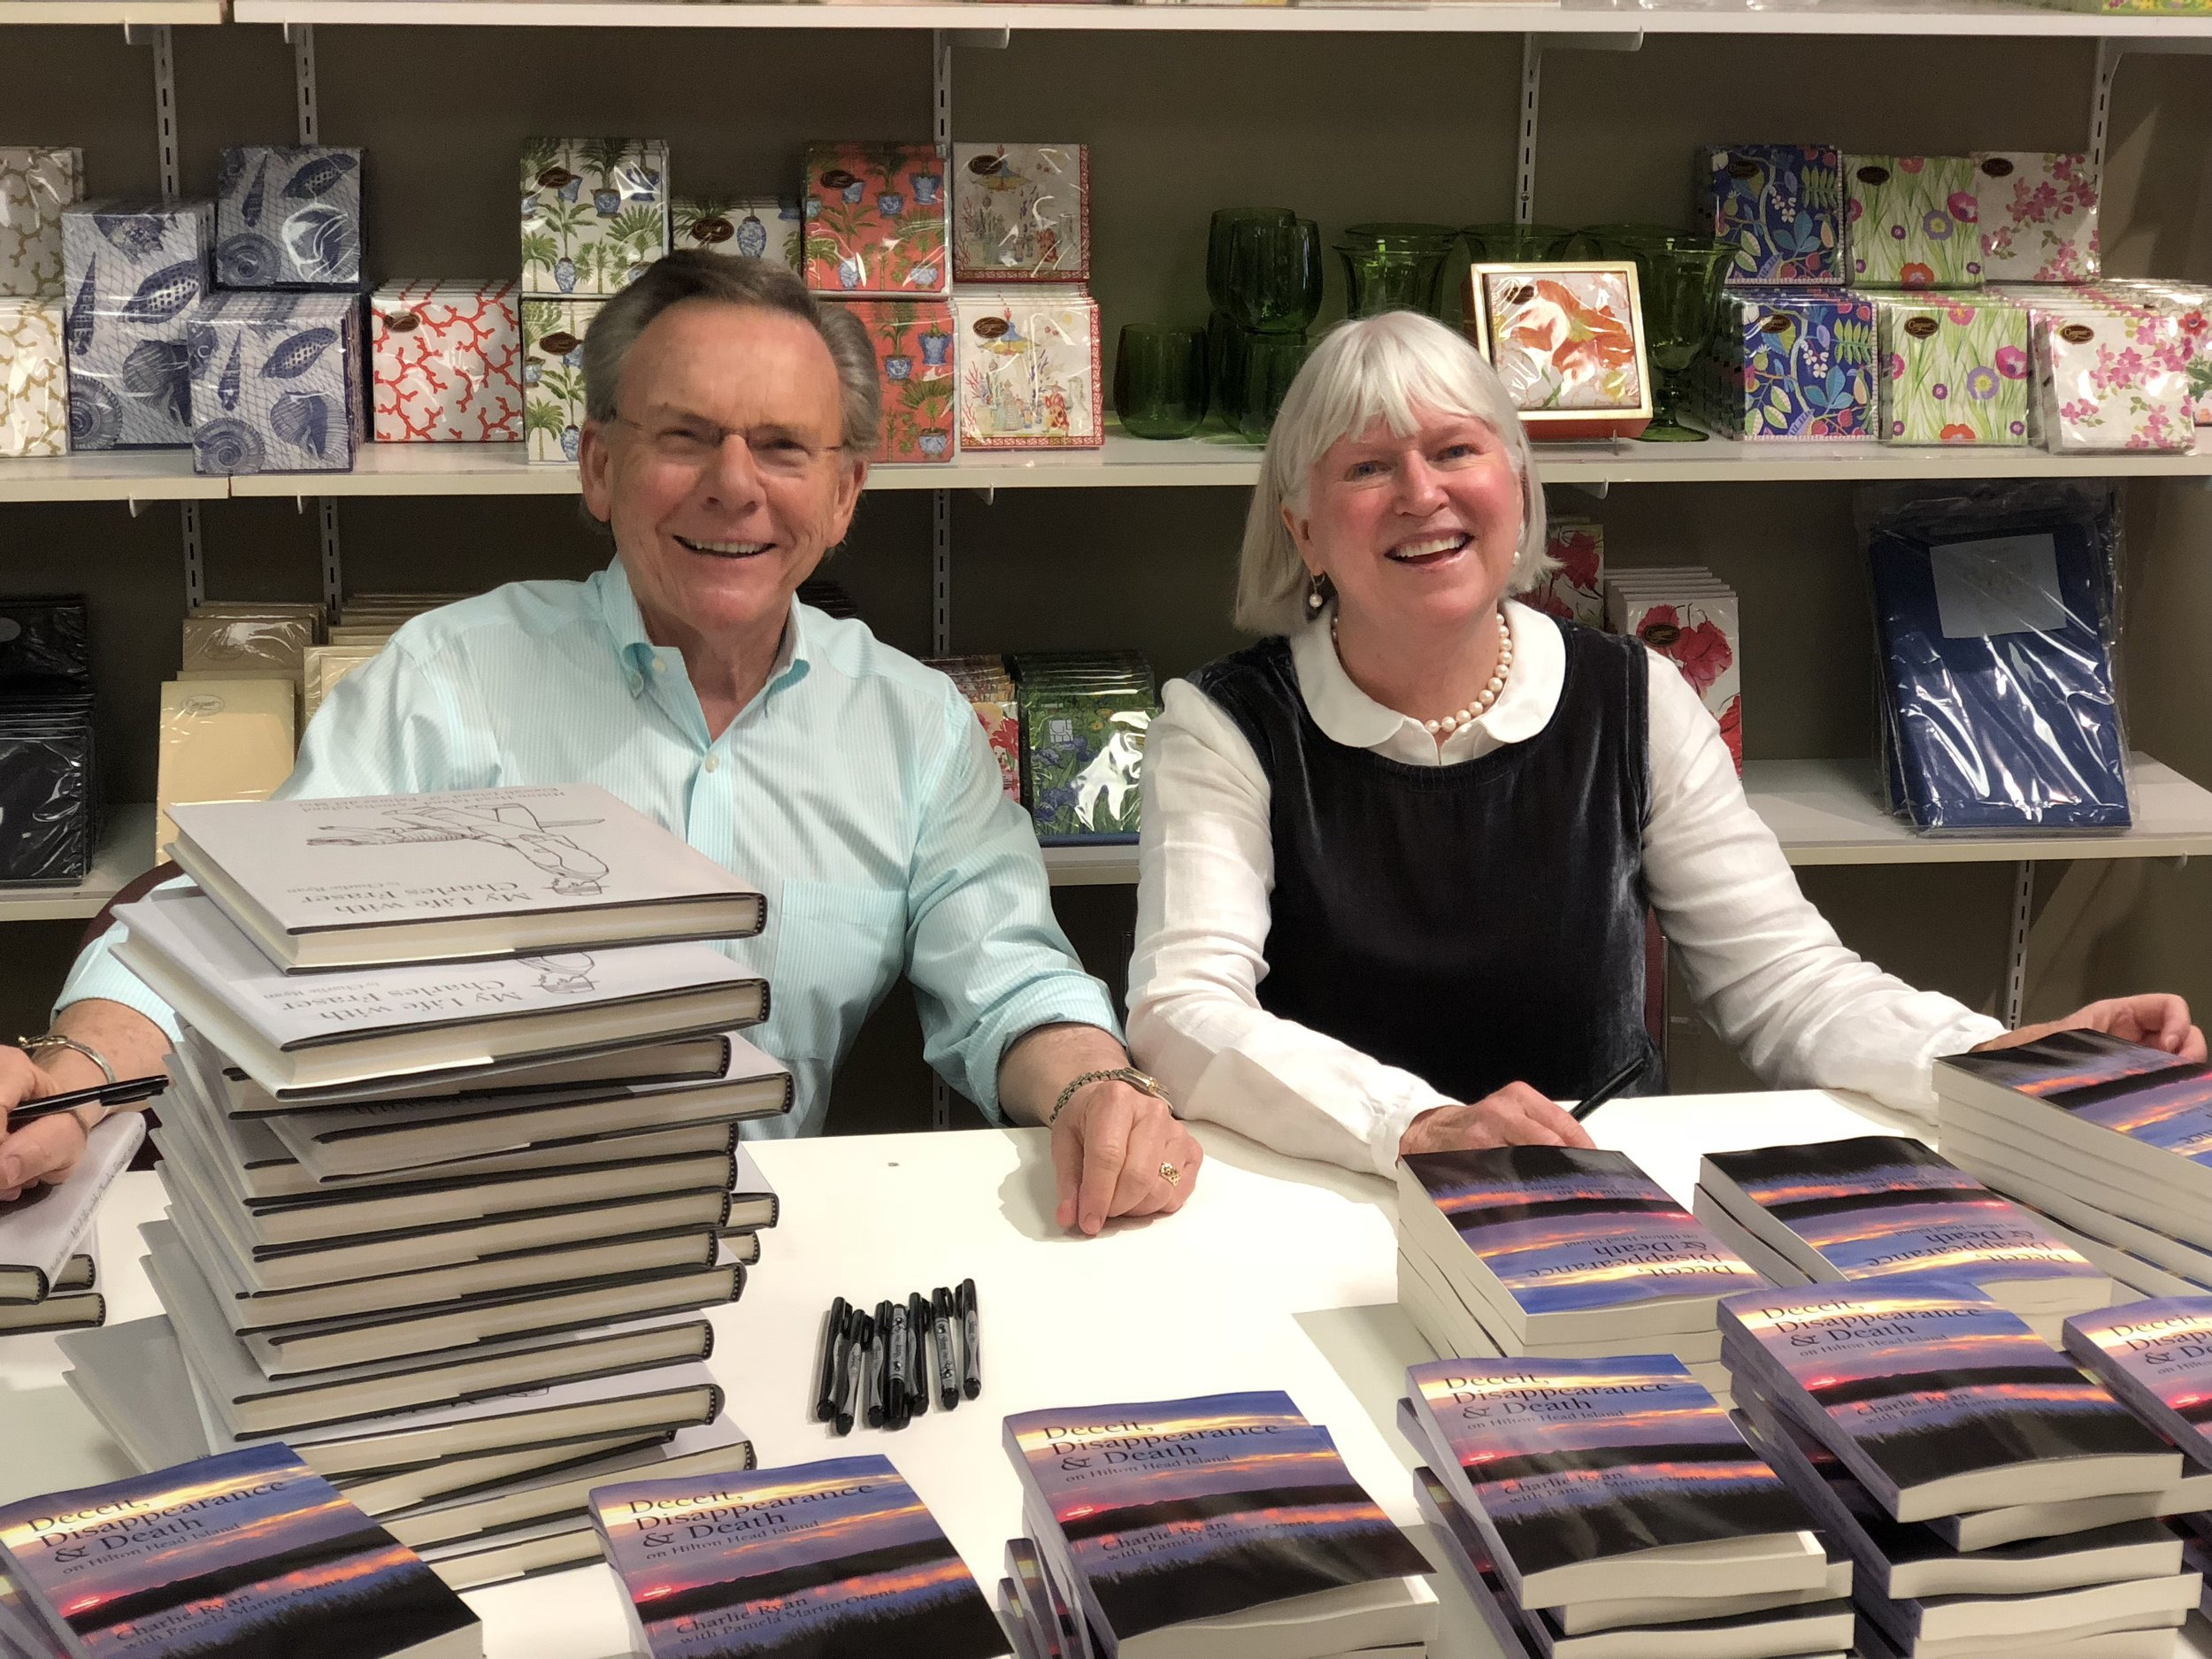 Charlie Ryan and Pamela Martin Ovens at their book launch at Pretty Papers.